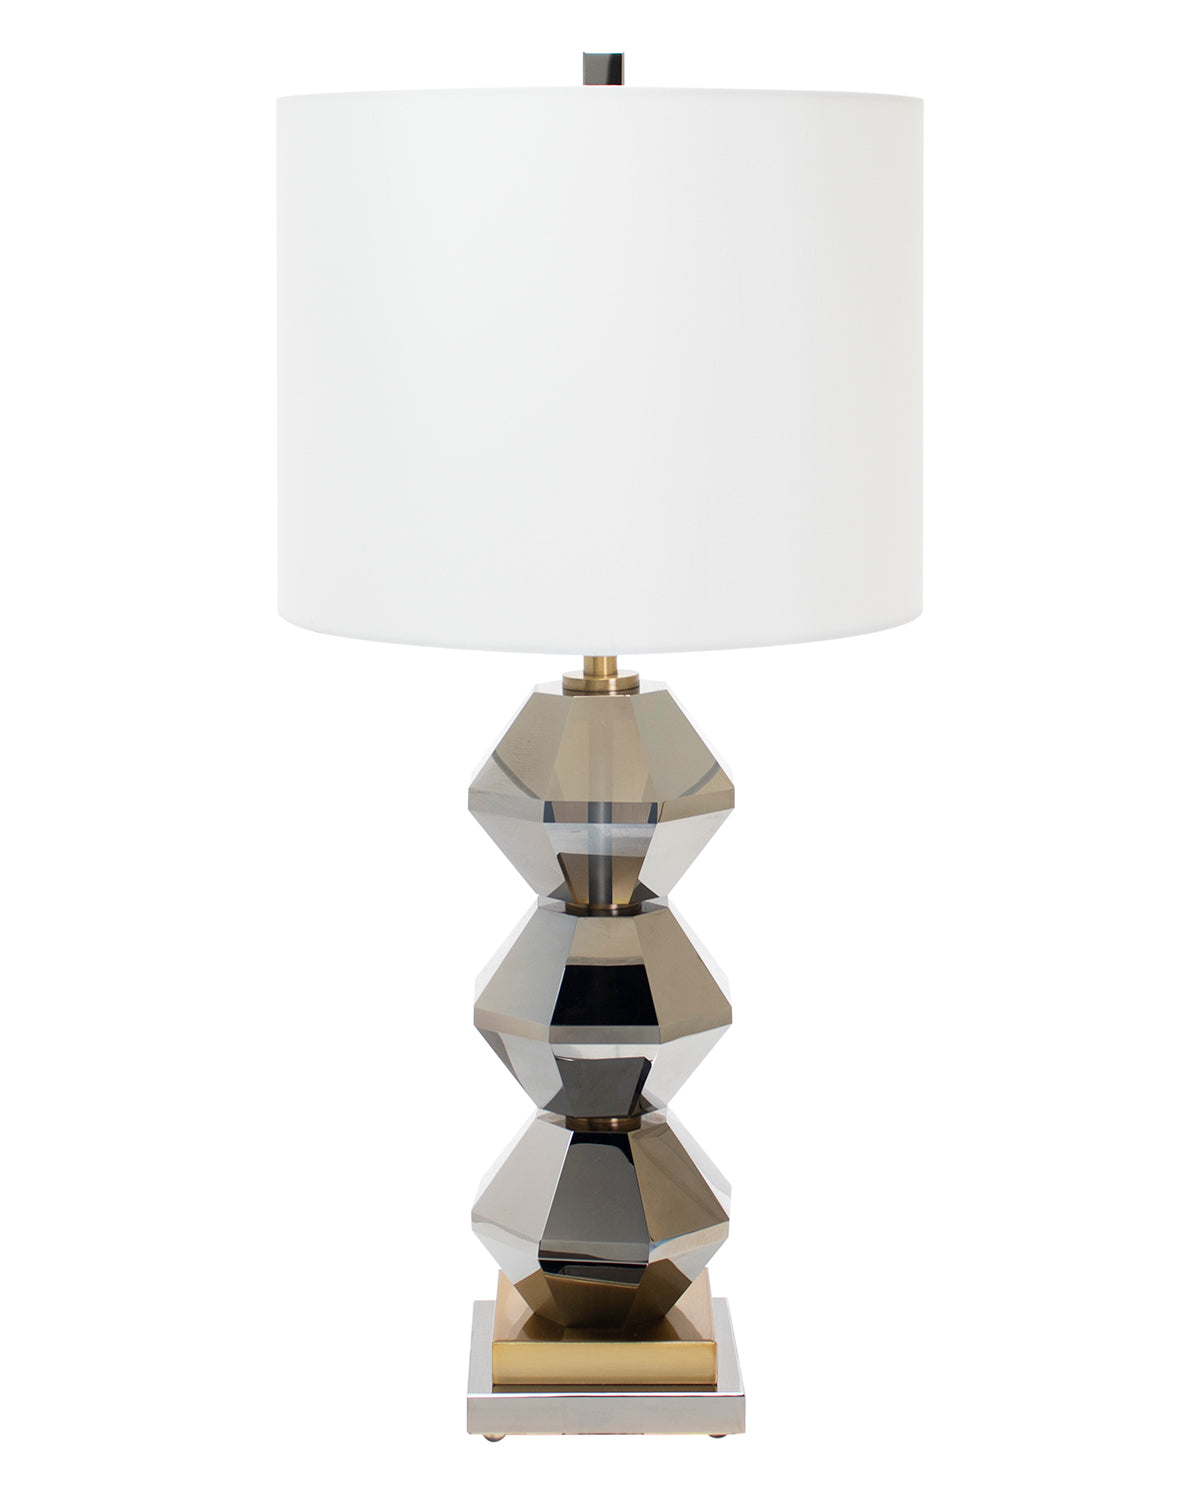 Rockefeller Table Lamp - NEW - Couture Lamps